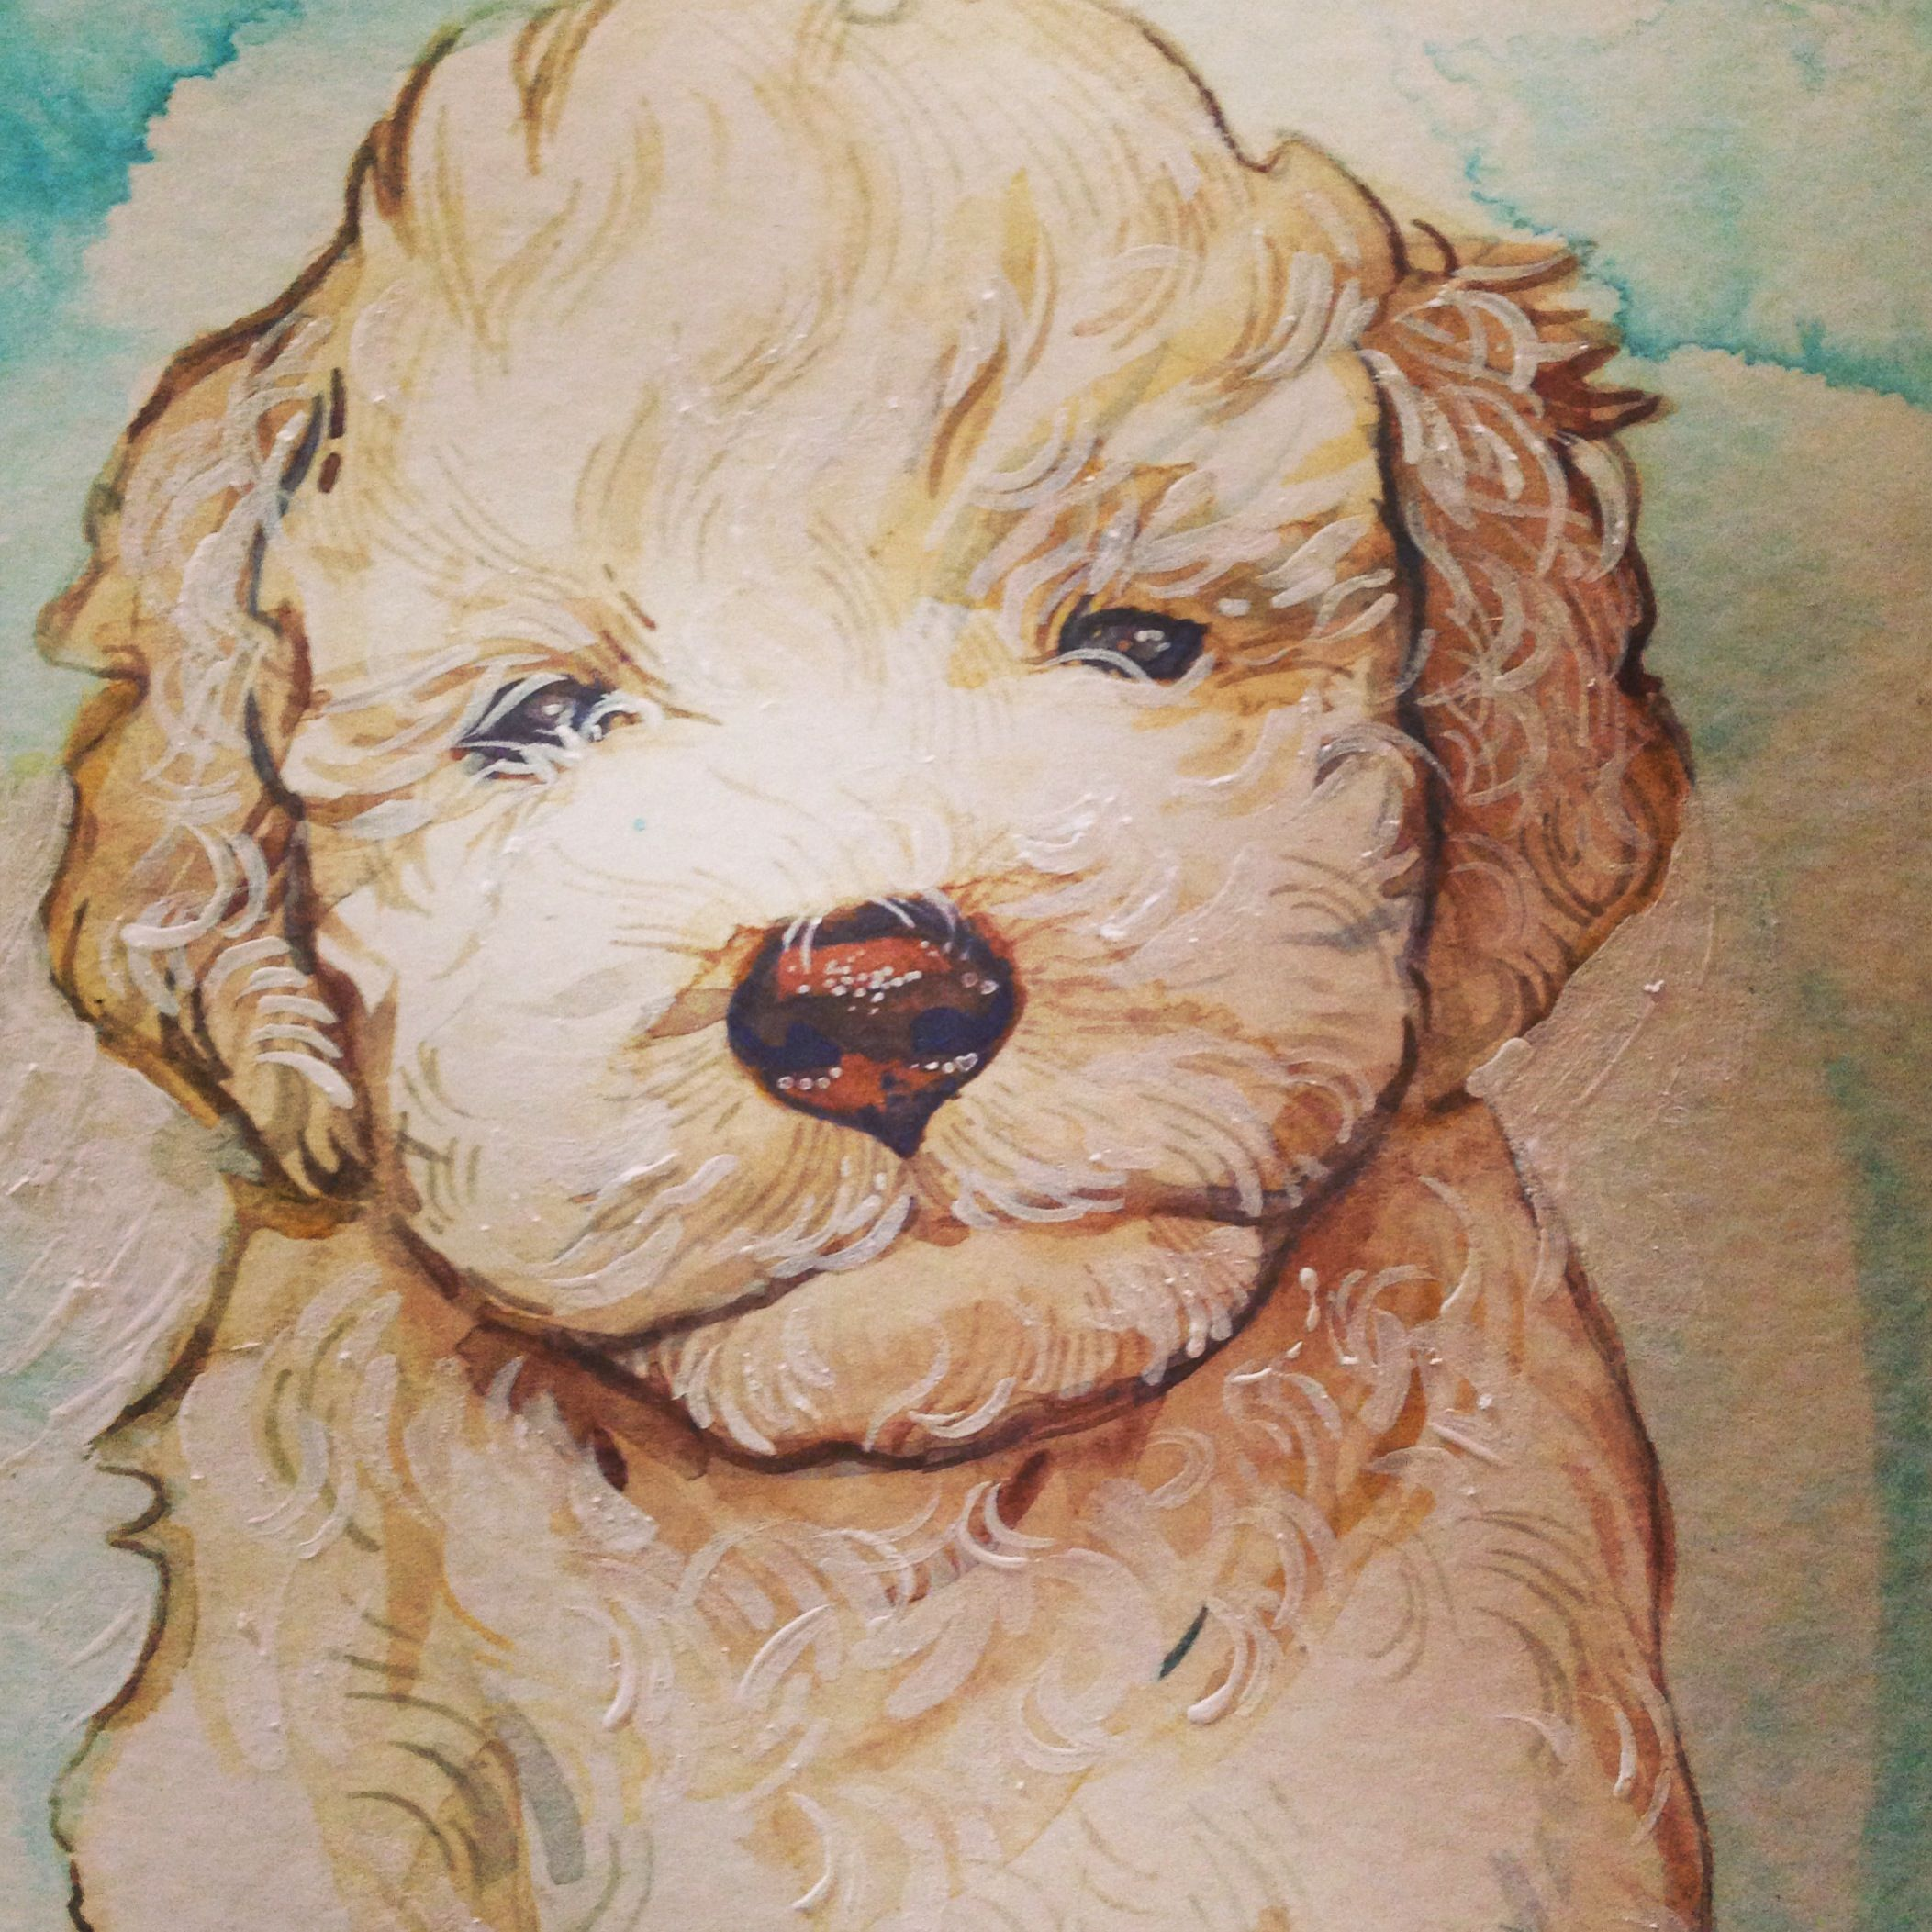 A detail of a recent portrait of an ancient dog breed